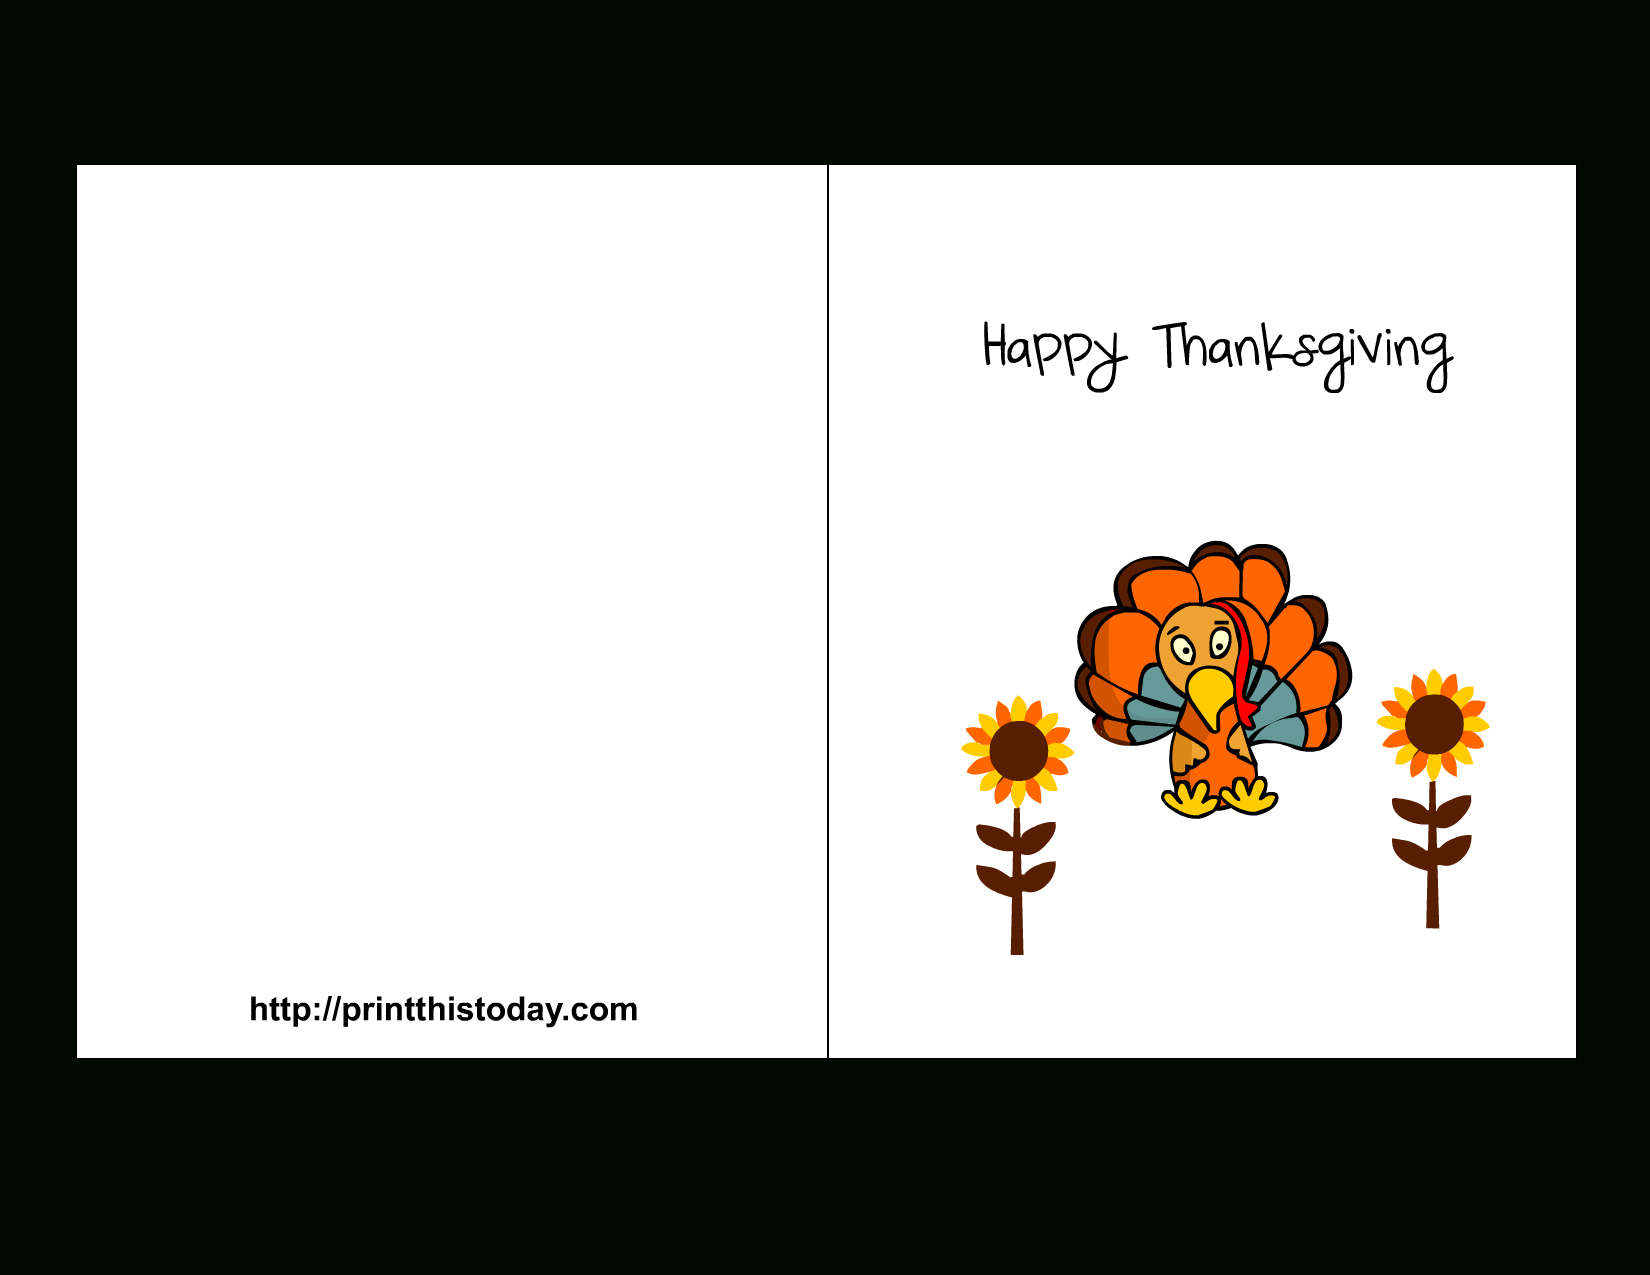 Printable Thanksgiving Cards - Printable Cards - Free Printable Thanksgiving Cards